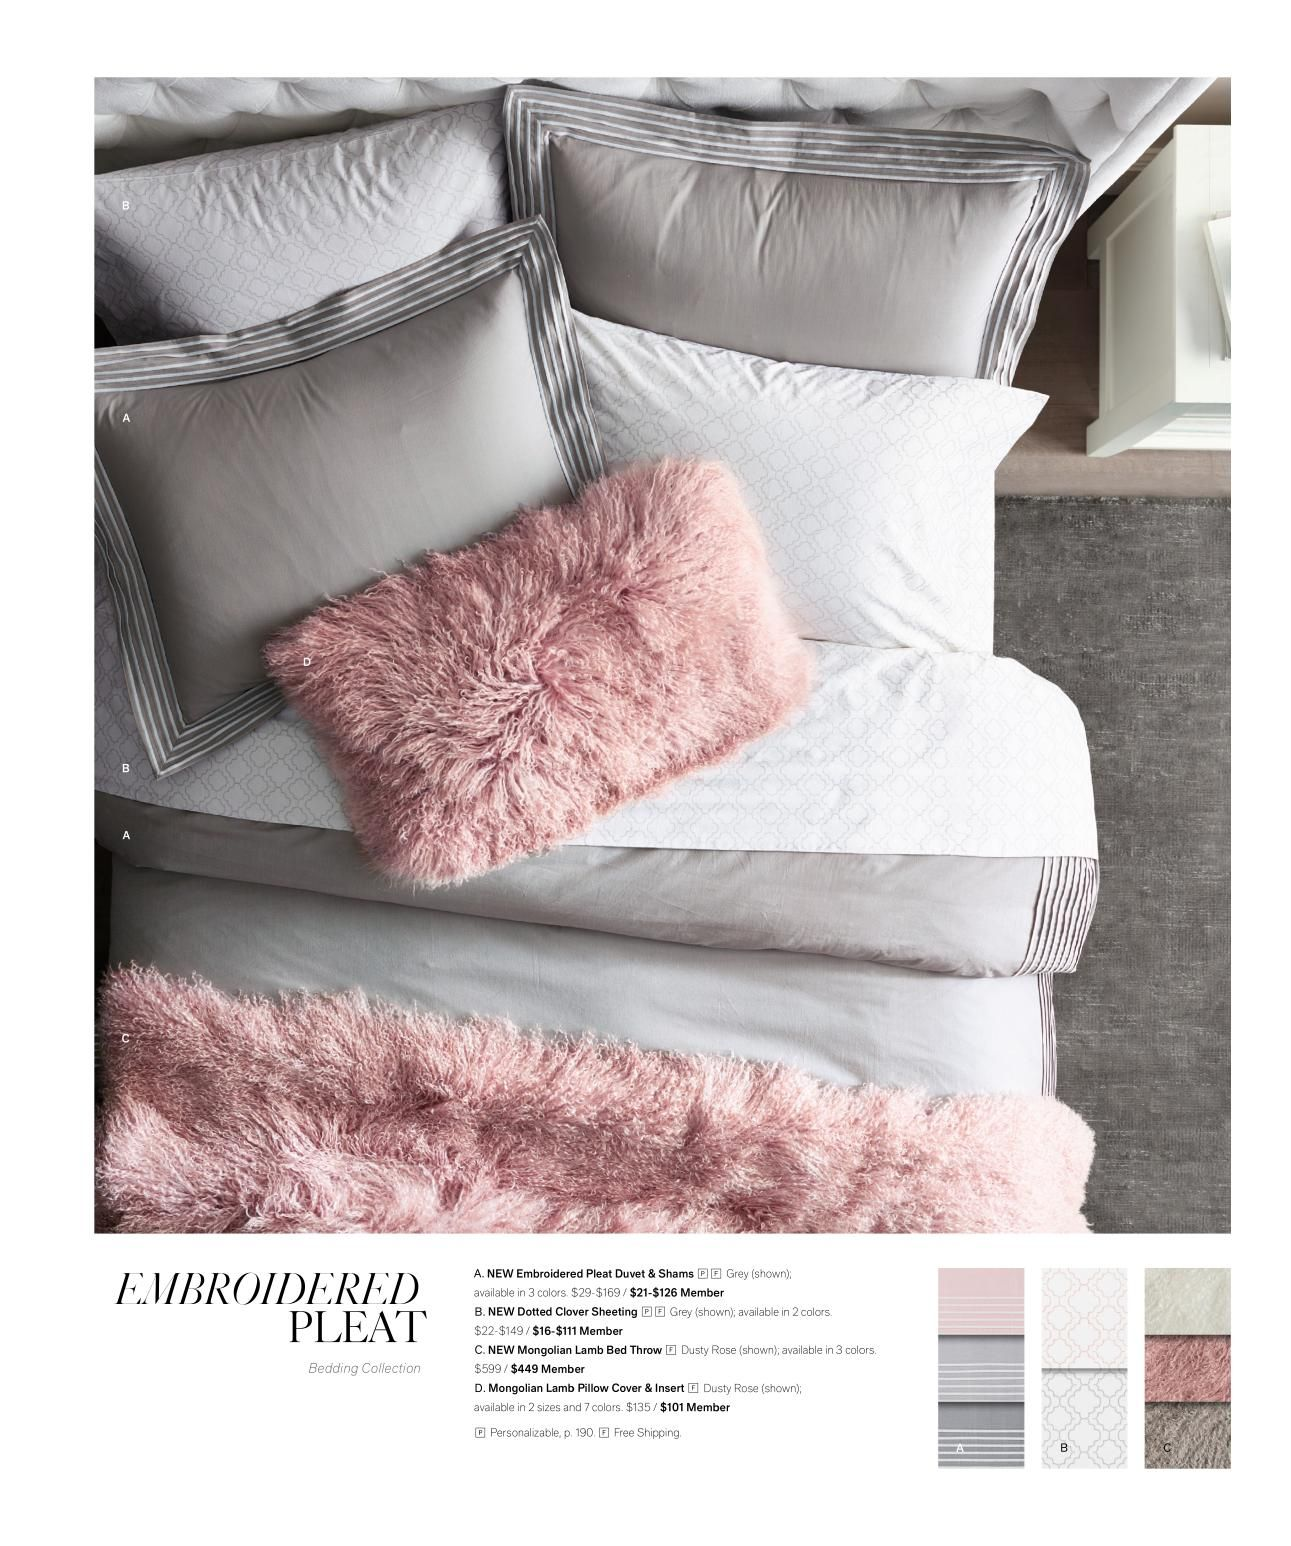 0435380df24d2c3f48b12bedf0c960a5 - This Story Behind Pink Faux Fur Pillow Will Haunt You Forever!